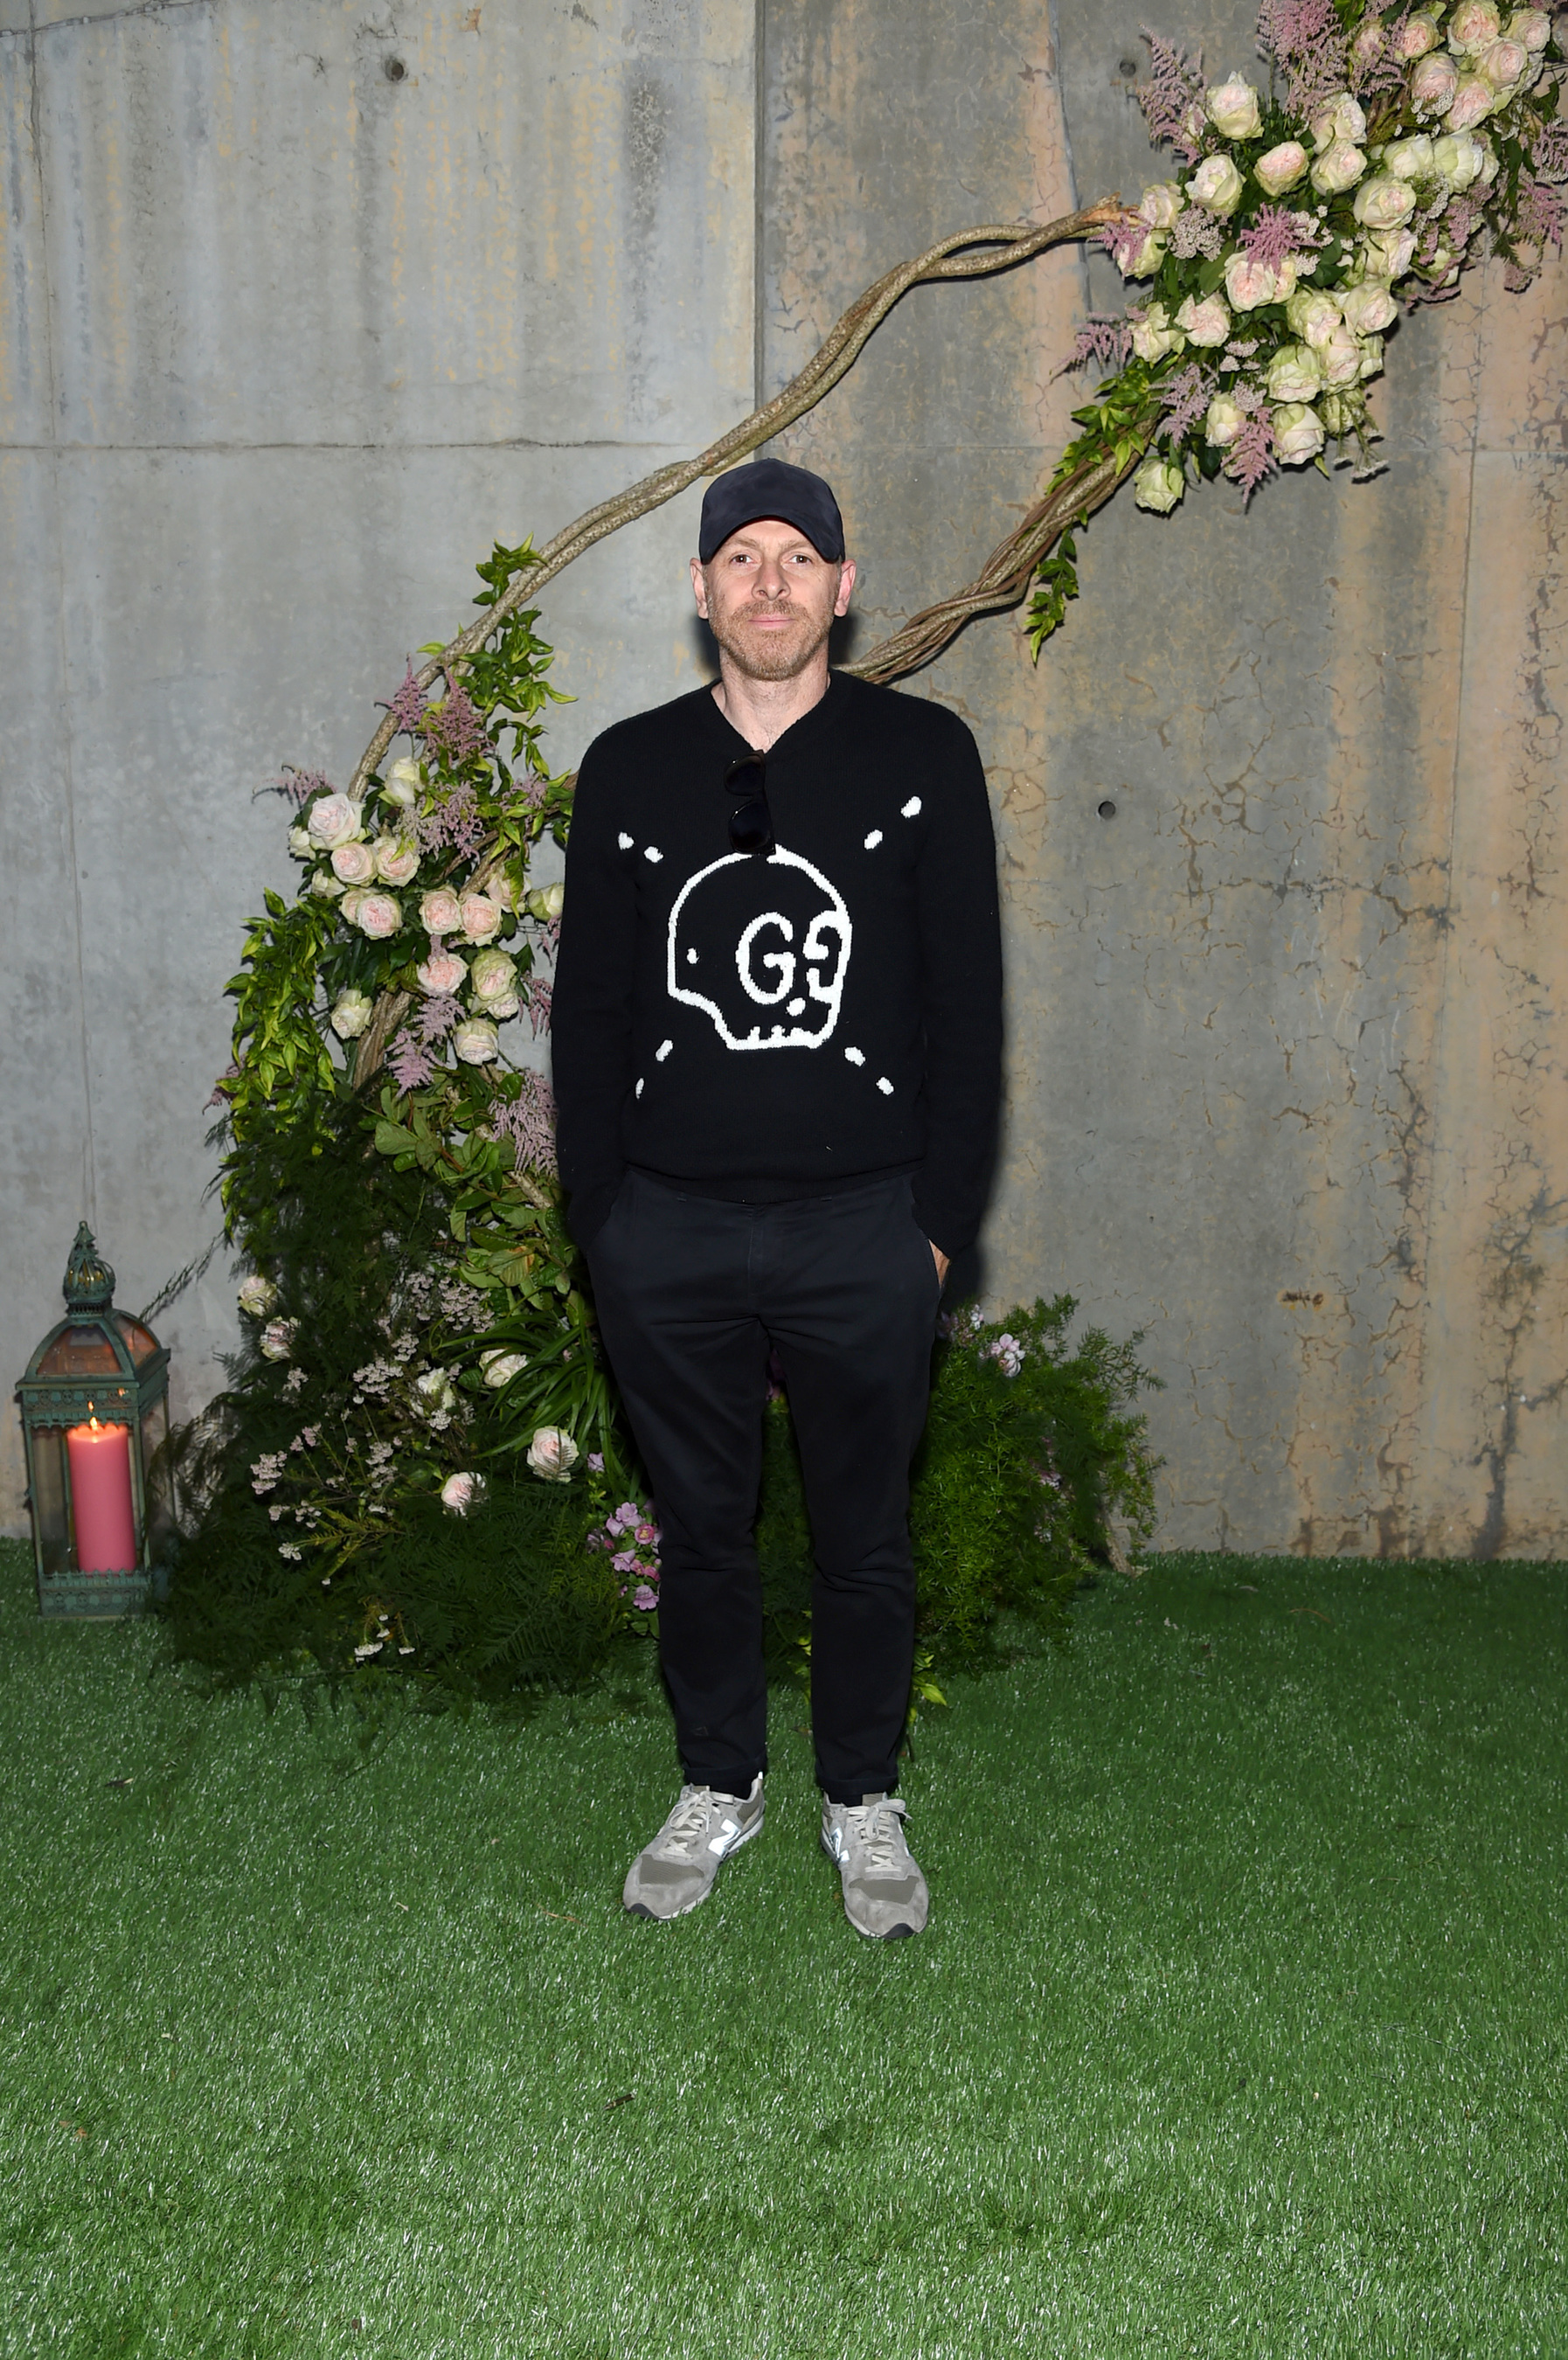 NEW YORK, NY - MAY 02: Glen Luchford attends the Gucci Bloom Fragrance Launch at MoMA PS.1 on May 2, 2017 in New York City. (Photo by Jamie McCarthy/Getty Images for Gucci)